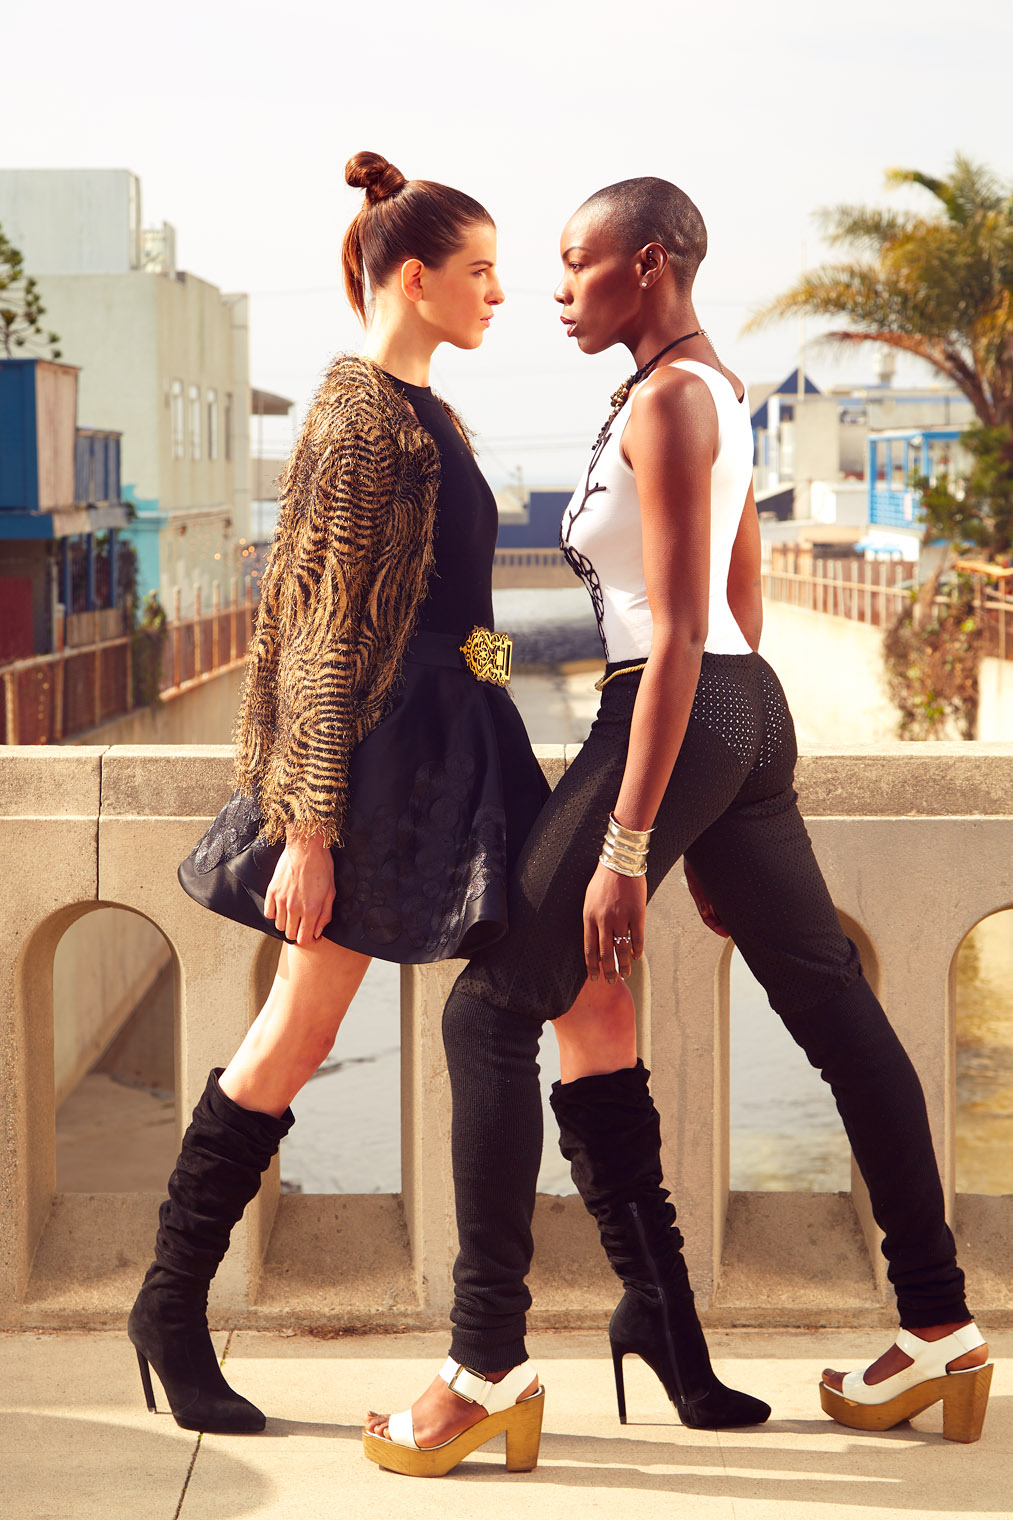 Best Frenemies fashion editorial two women facing off each other intense colors